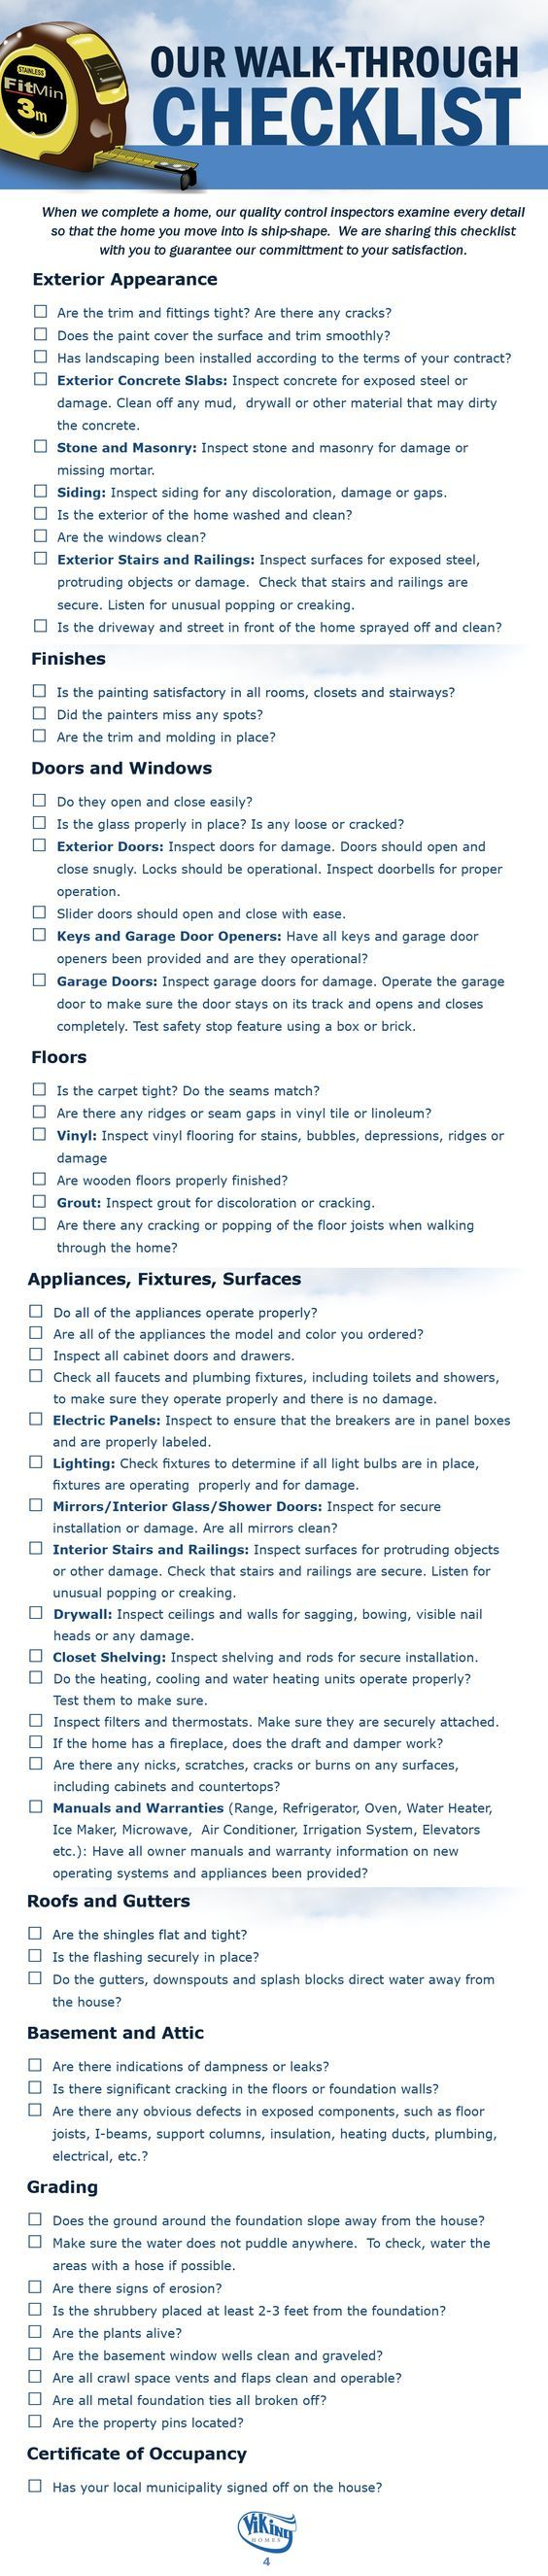 When Viking completes a home, our Quality Control Inspectors examine every detail so that the home you move into is ship-shape. We're sharing Our Walk-Through Checklist to guarantee that you'll be fully satisfied with your new Viking home!: